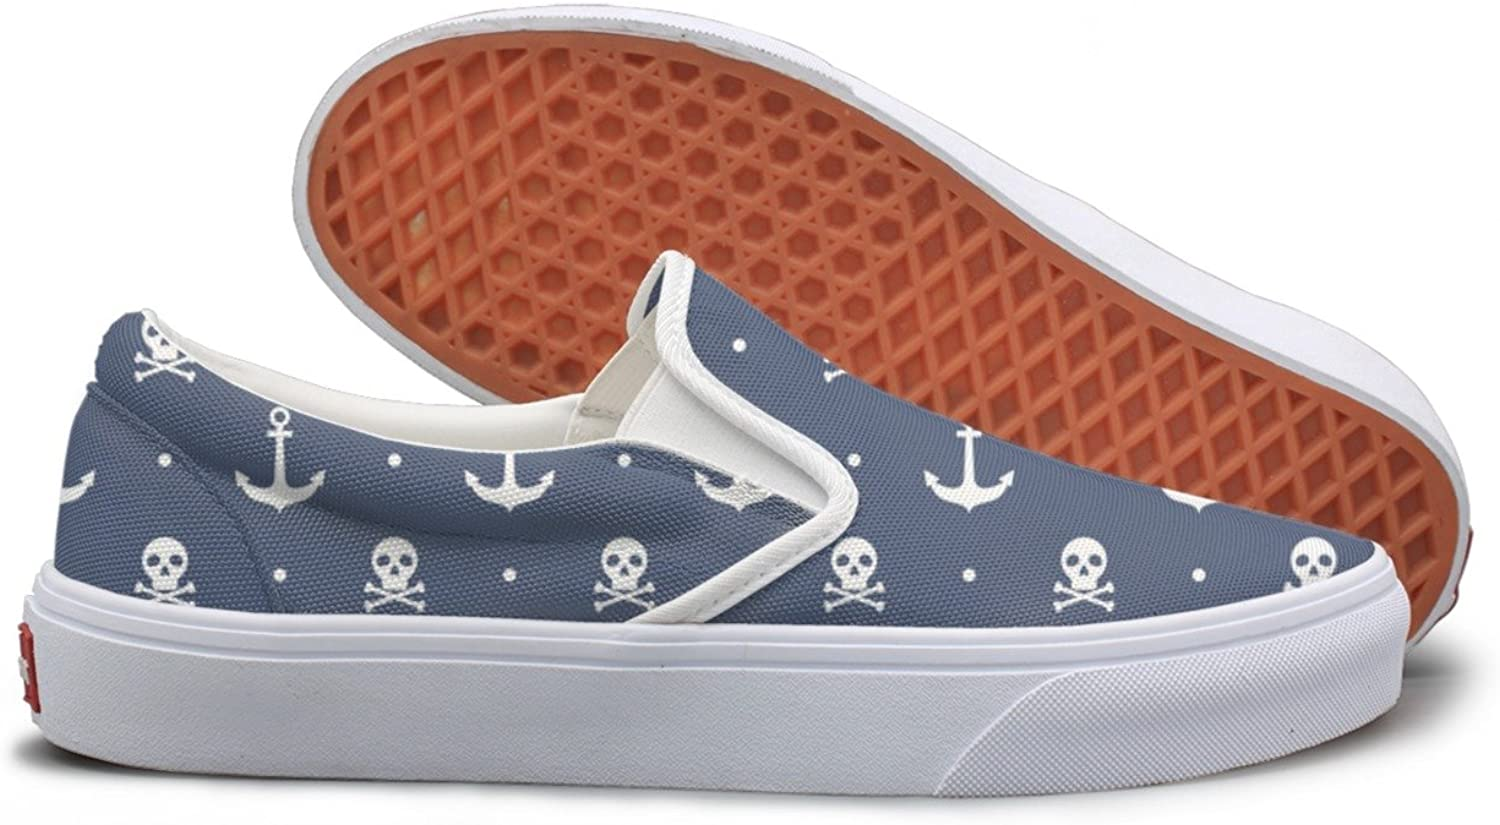 SEERTED Anchors and Skulls bluee Running Sneakers for Women